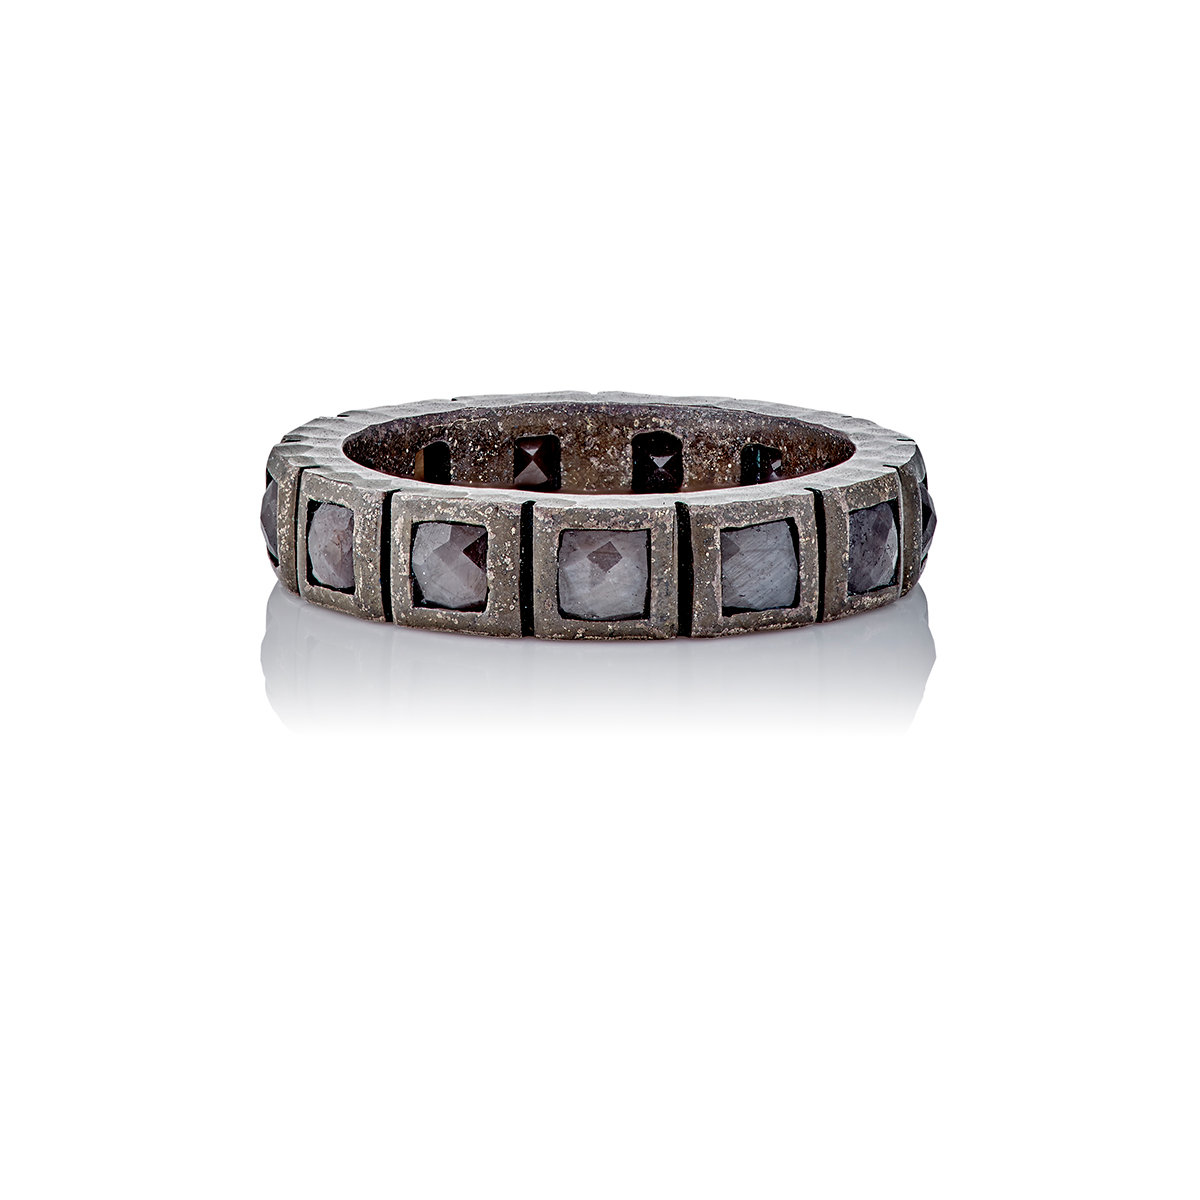 Nak armstrong women39s mosaic ring in brown lyst for Nak armstrong wedding ring